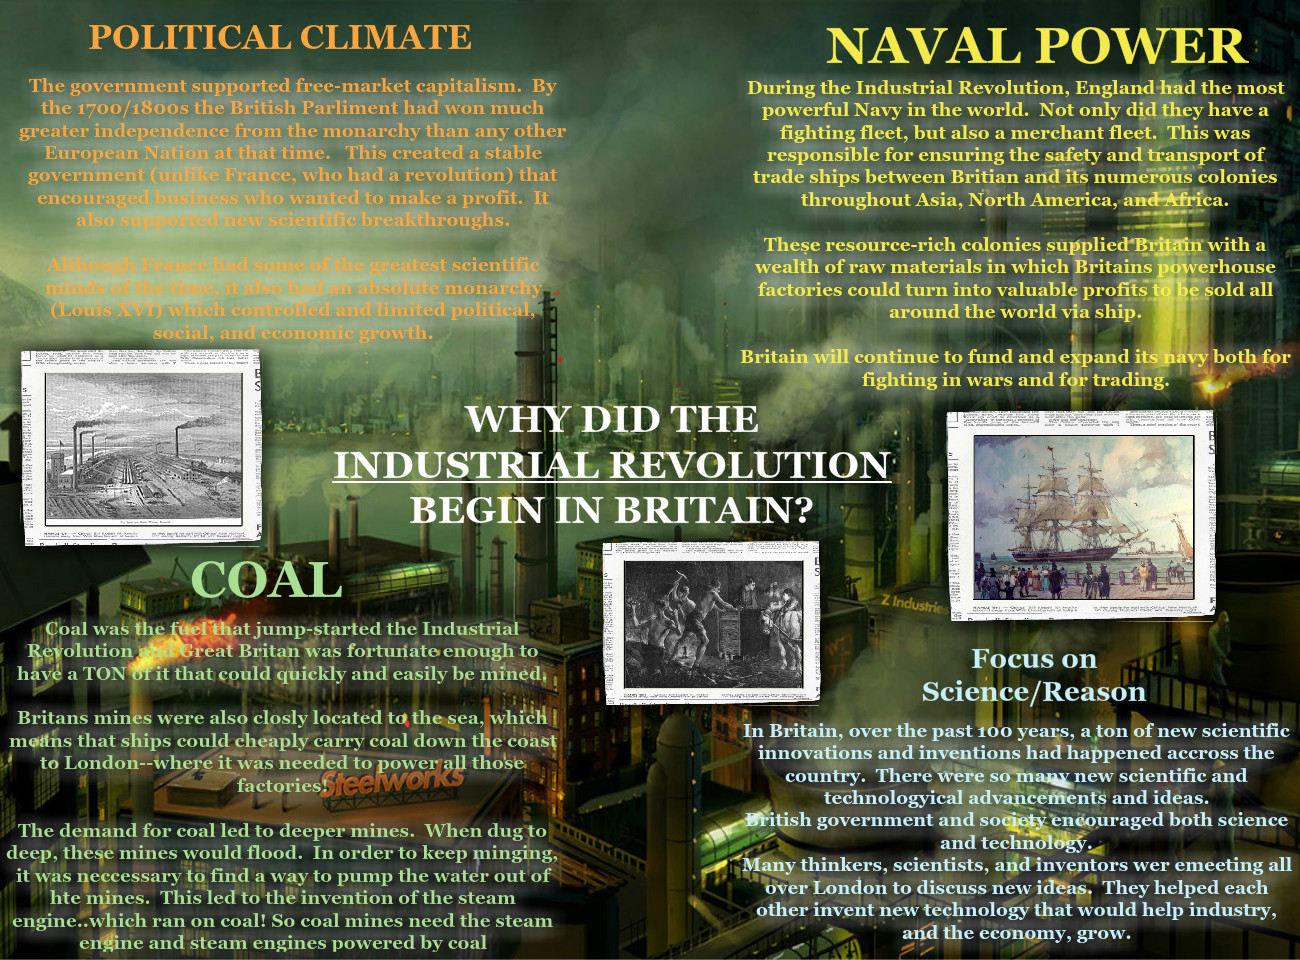 Why did Britian Industrialize First?